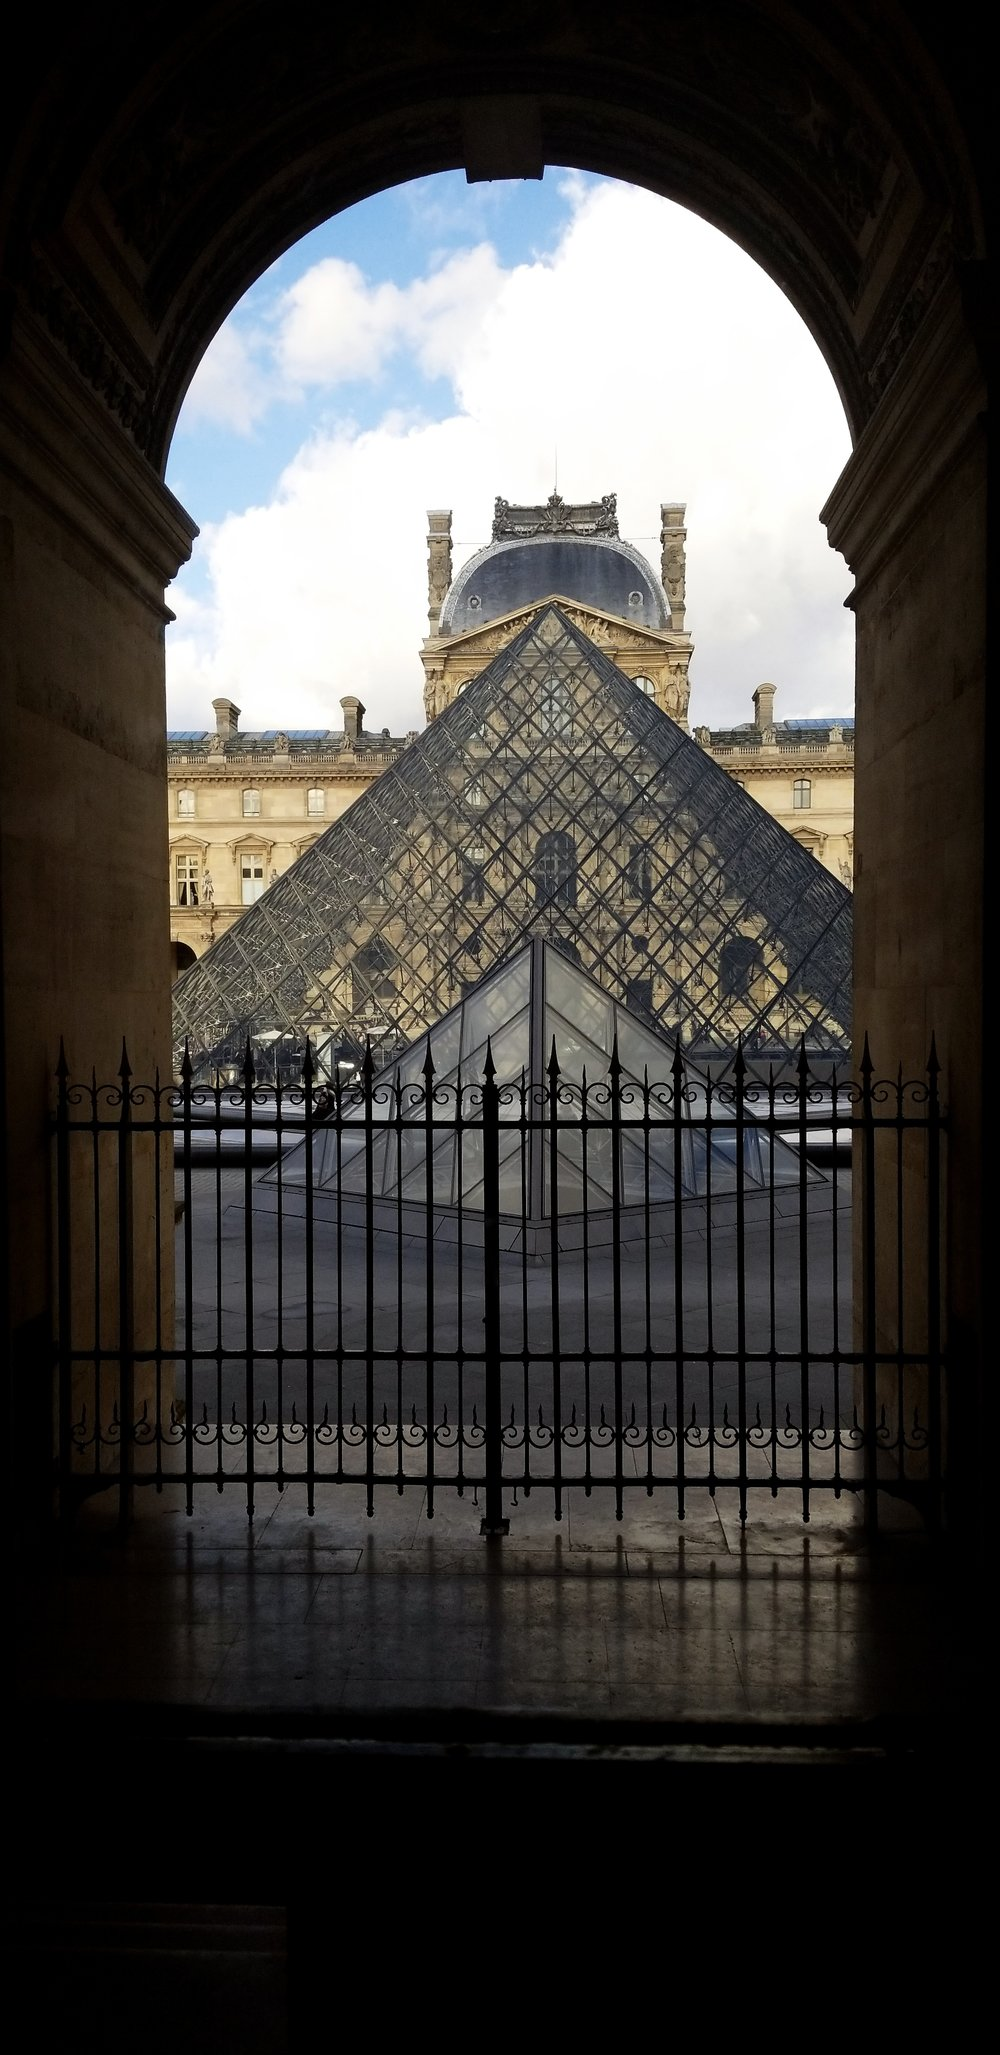 The Louvre. Photo by J. Thurston